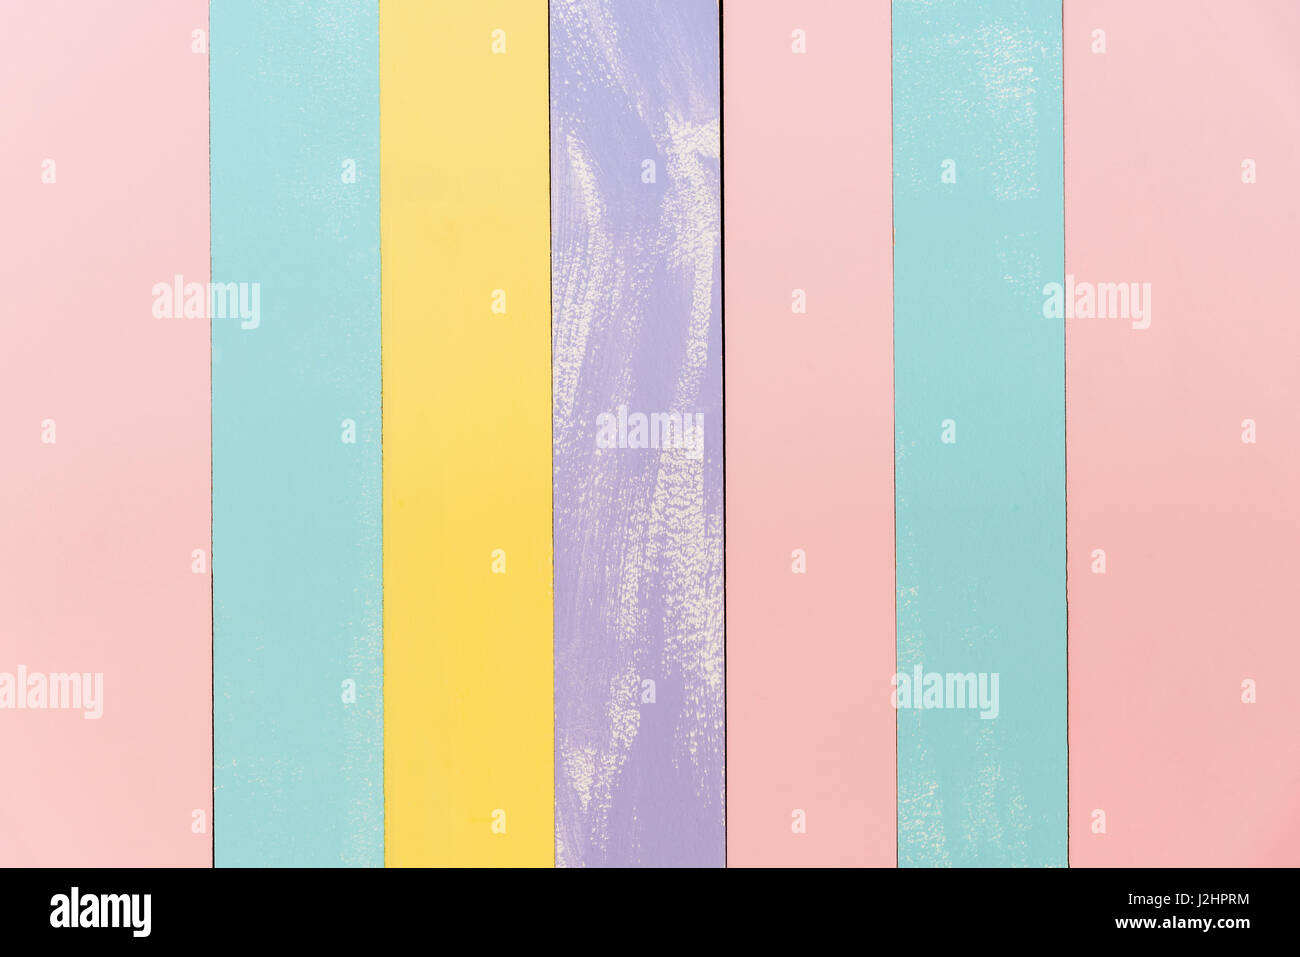 horizontal wood background. Old Vintage Wood Background Texture, Sweet Pastel Wooden Wall Colorful Grunge With Horizontal Stripe. Use For Backdrop